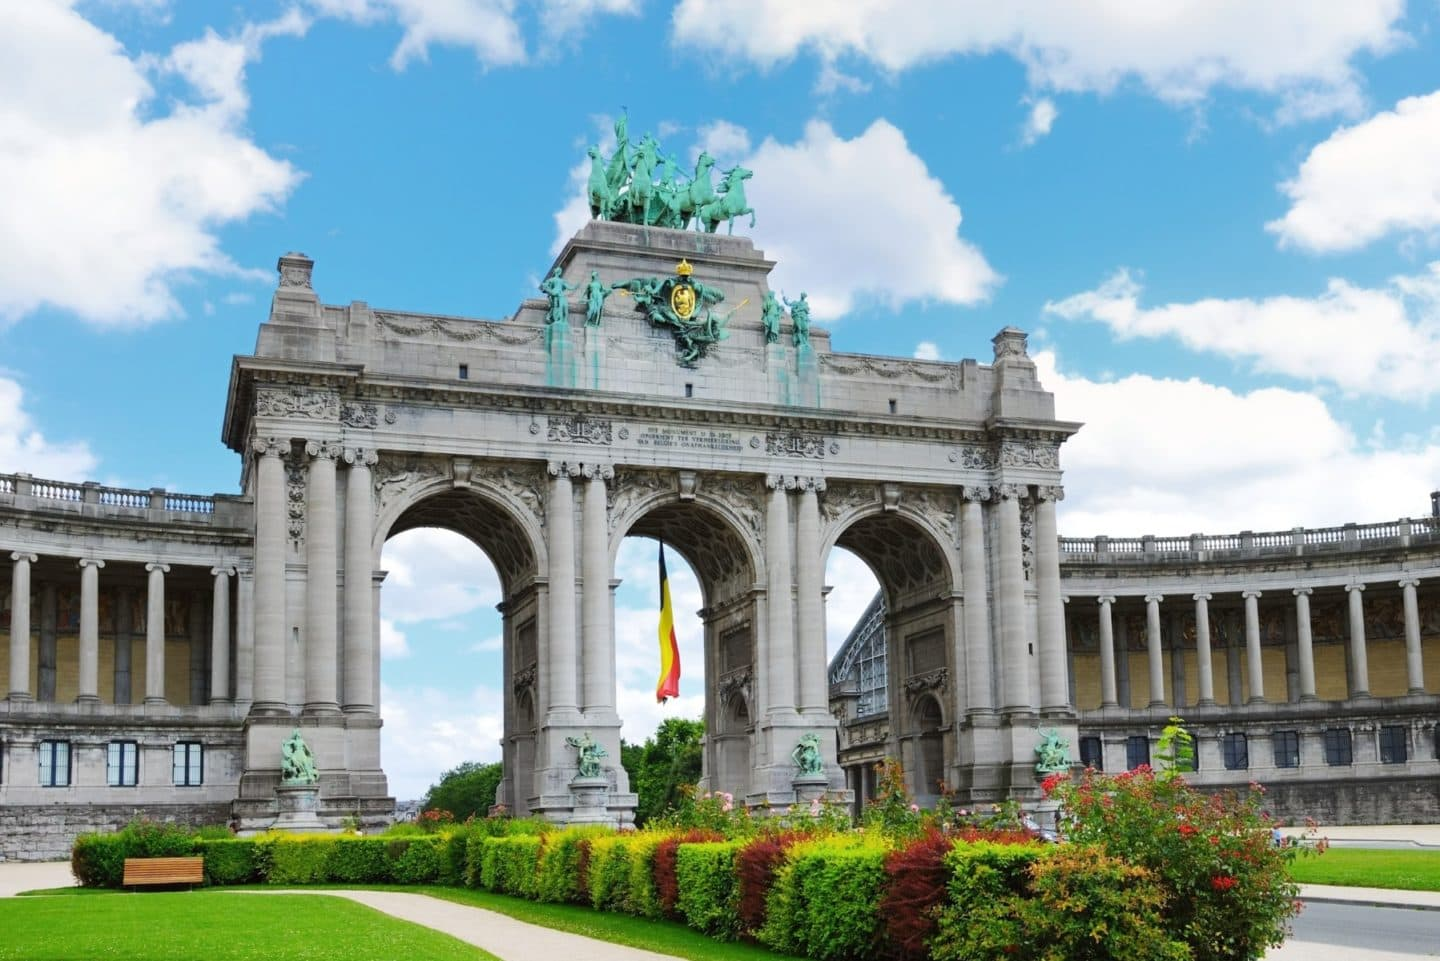 #brussels Only have a few hours to see Brussels? Here are the best things to see and do in Brussels in one day or less! #thingstodo #europetravelguide